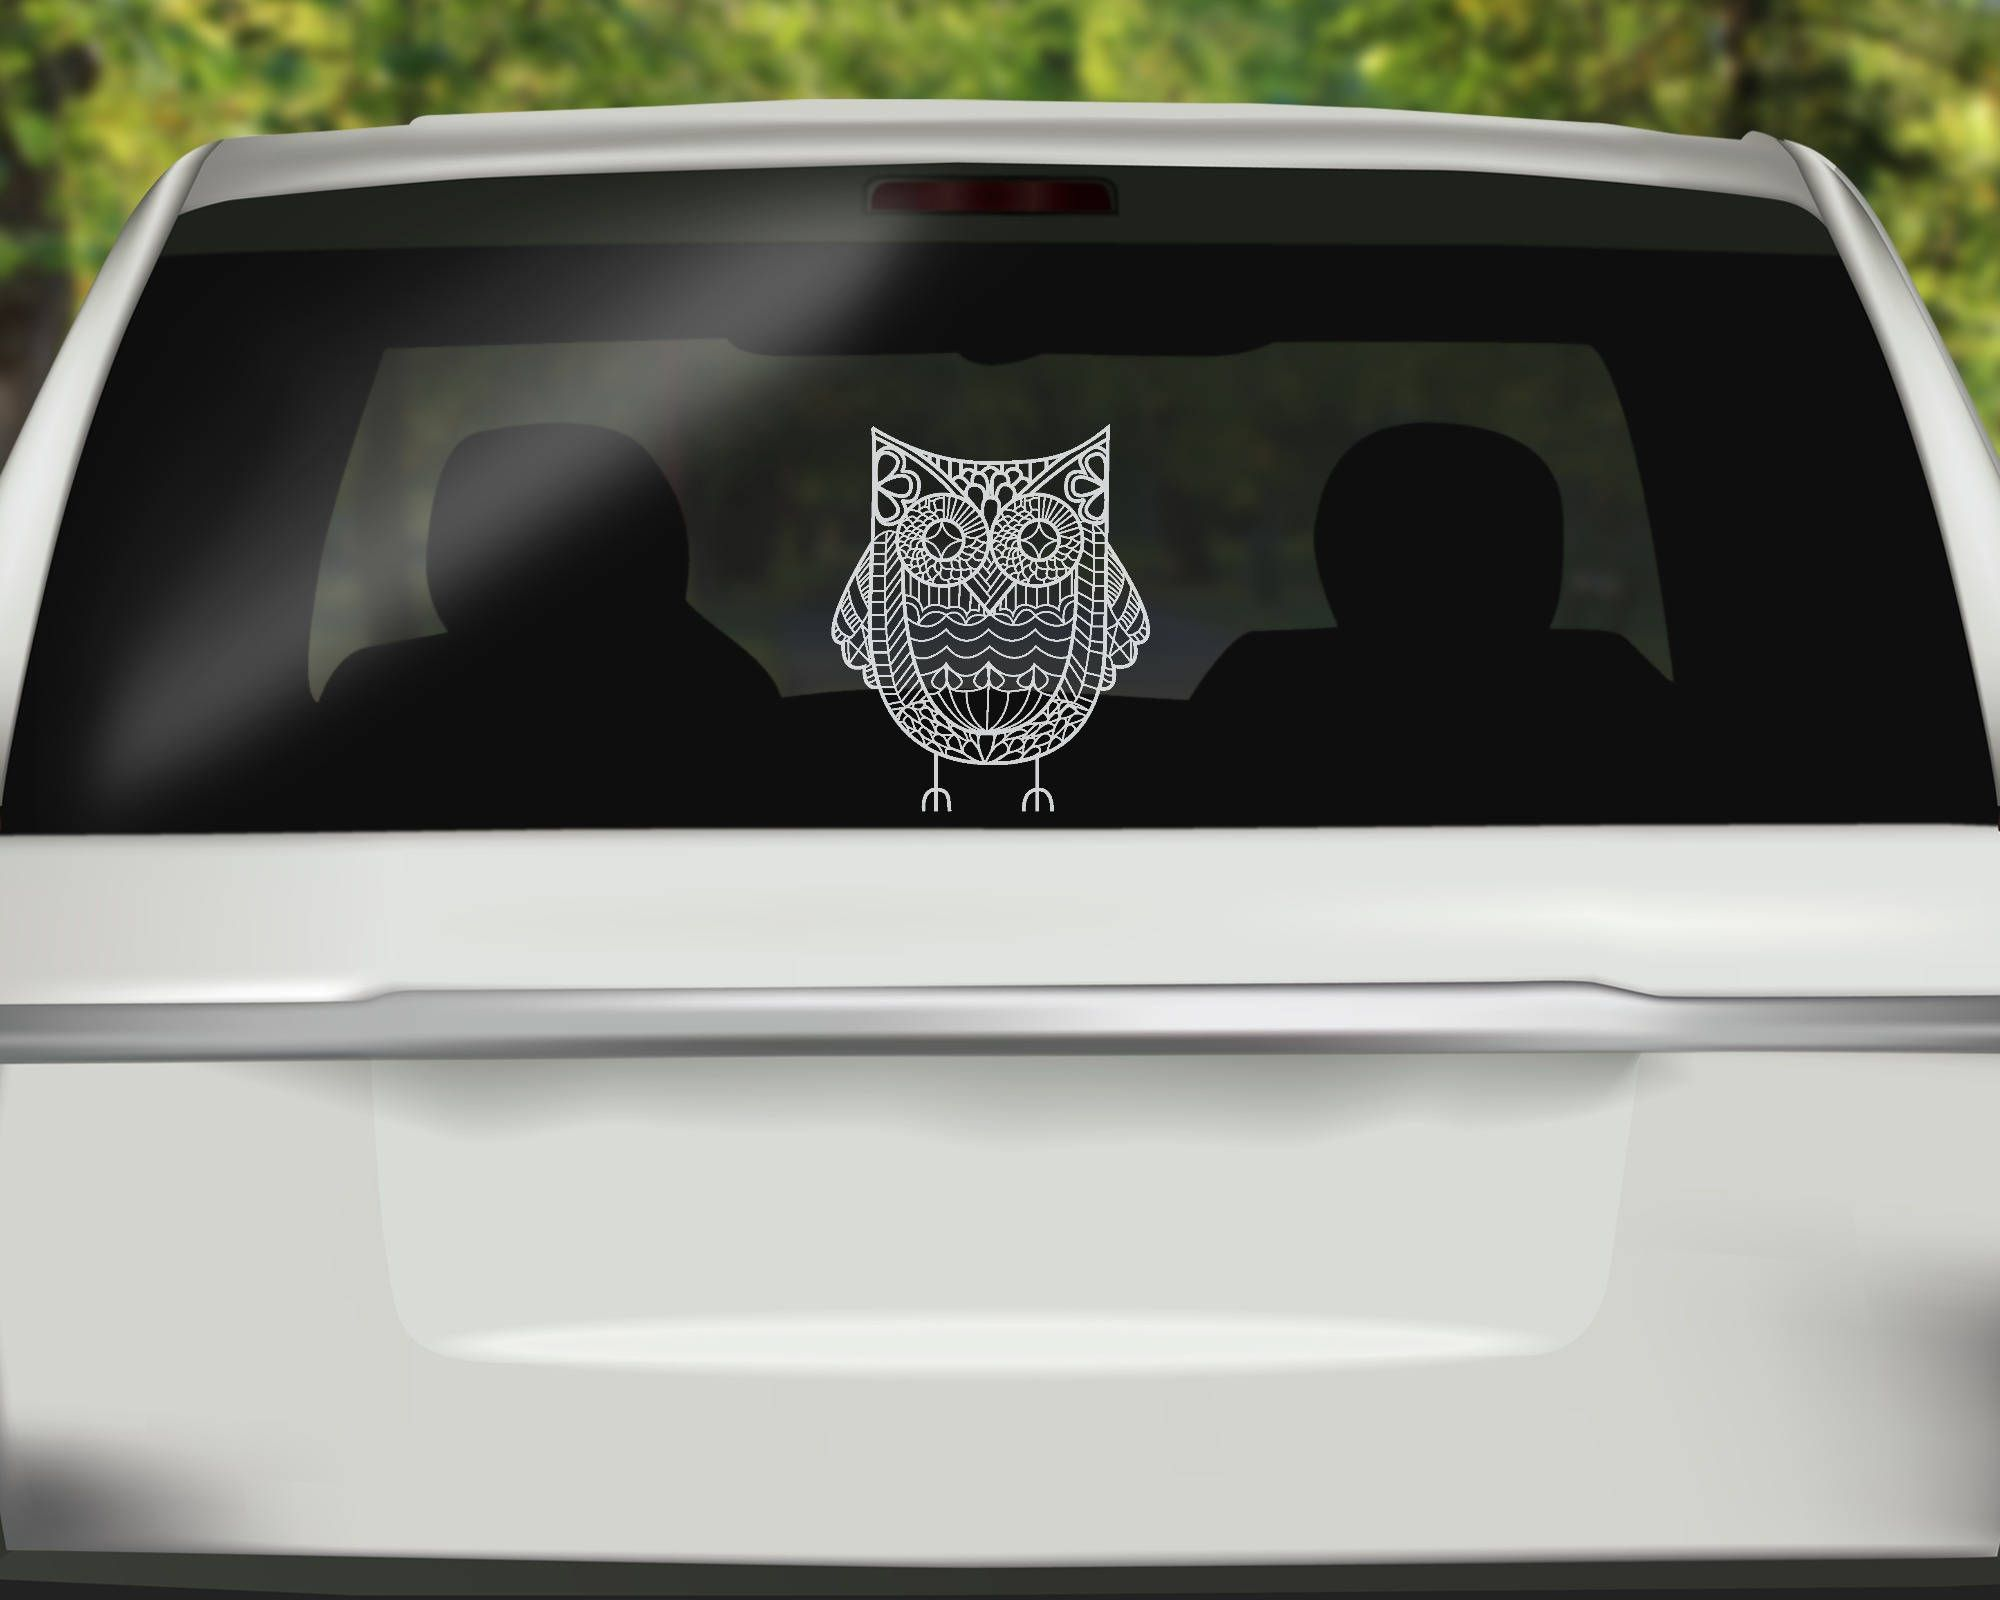 1dc64a7d2 Owl Zentangle Decal - Owl Car Decal - Mandala Sticker - Zentangle Sticker - Bird  Bumper sticker - Vinyl Decal - Car Stickers by SpencerVinyl on Etsy